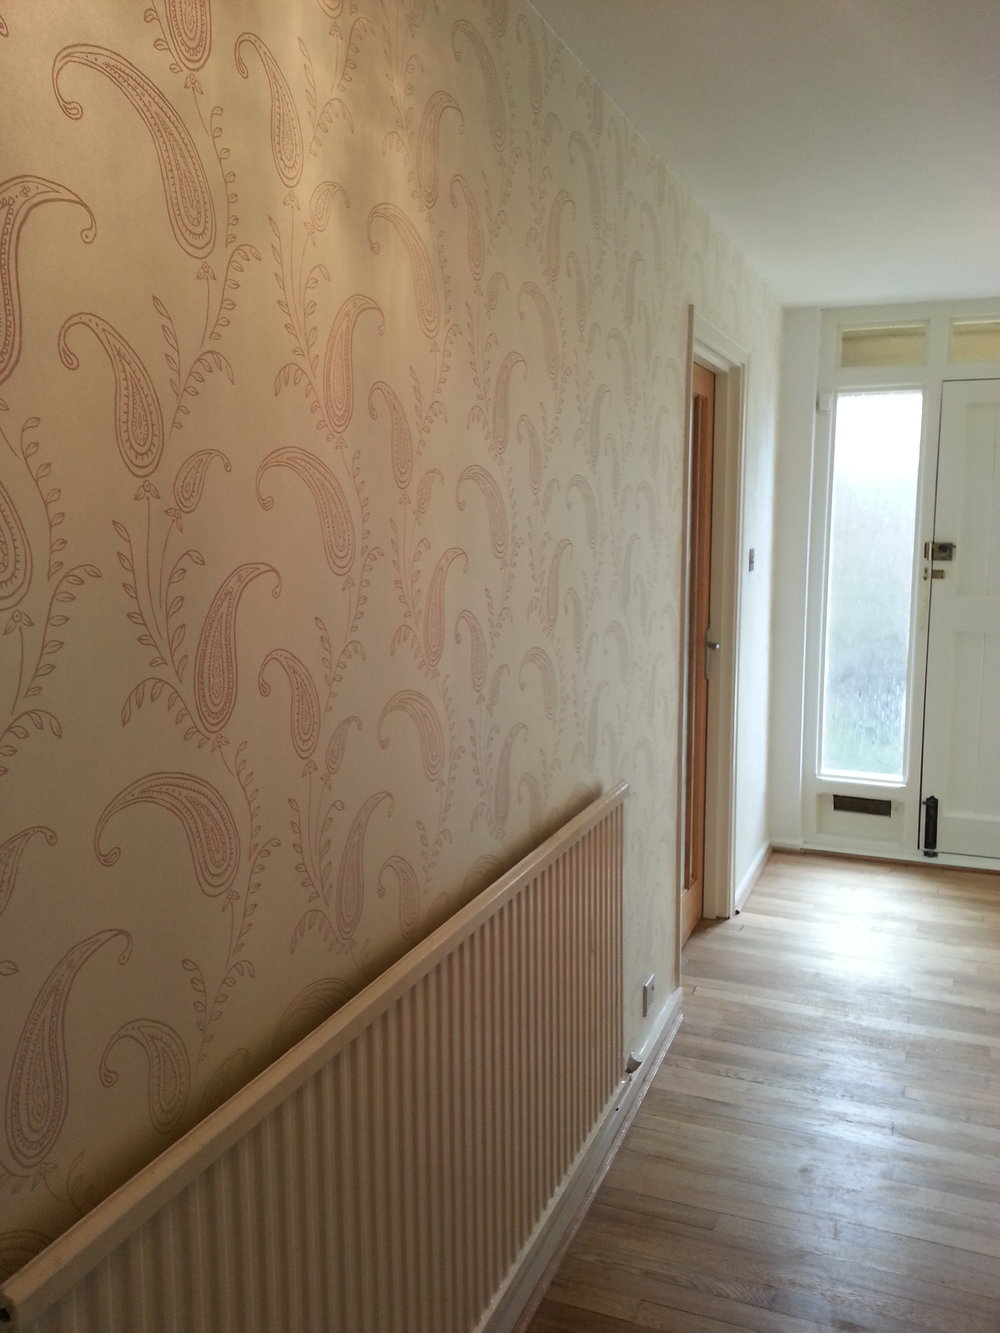 painting and wallpapering completed in Royal Wootton Bassett, Wiltshire